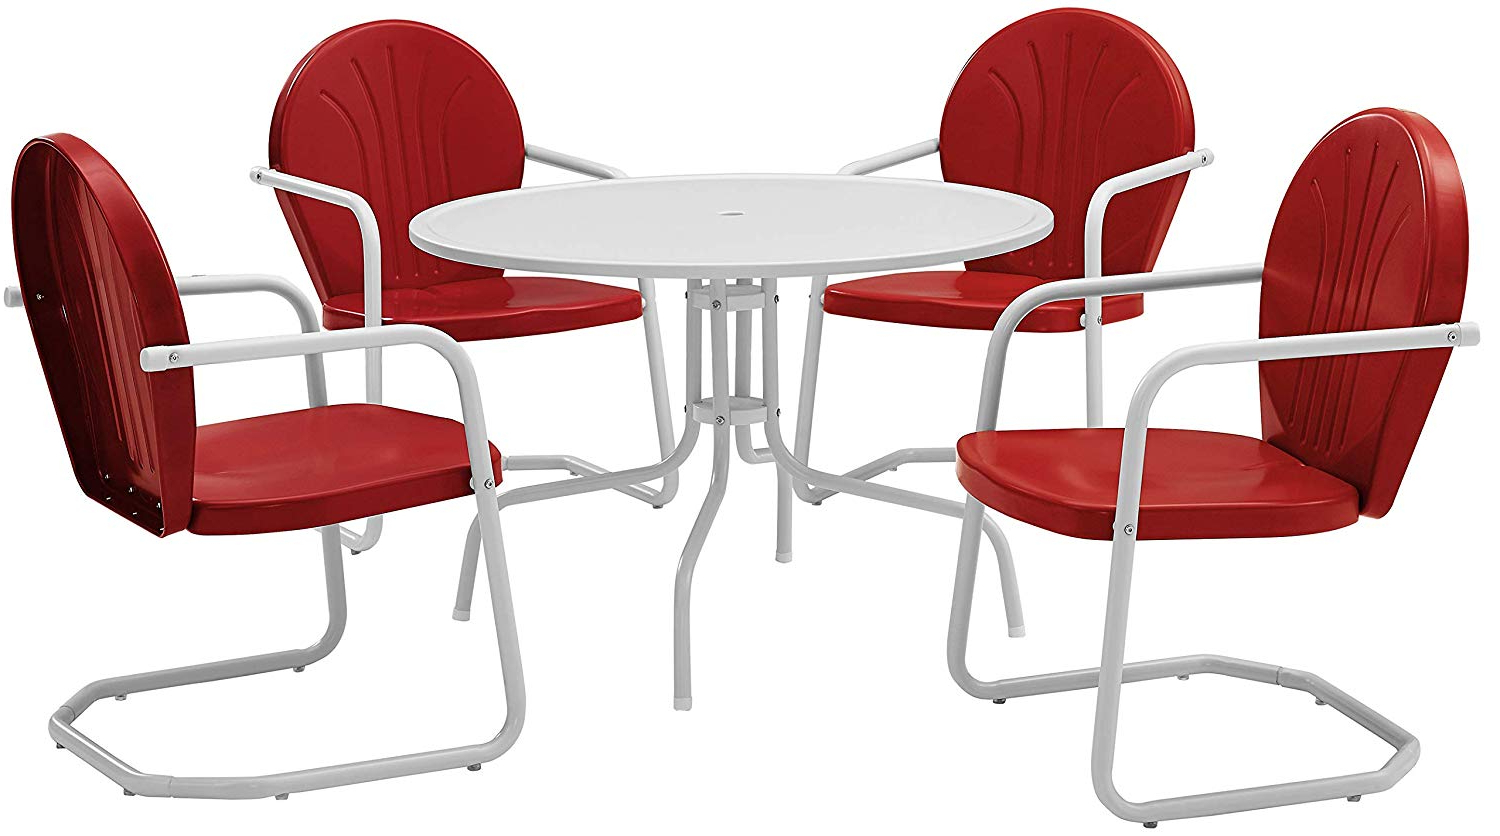 Crosley Furniture Griffith 5 Piece Metal Outdoor Dining Set With Table And  Chairs – Coral Red Regarding Popular Bate Red Retro 3 Piece Dining Sets (View 8 of 20)